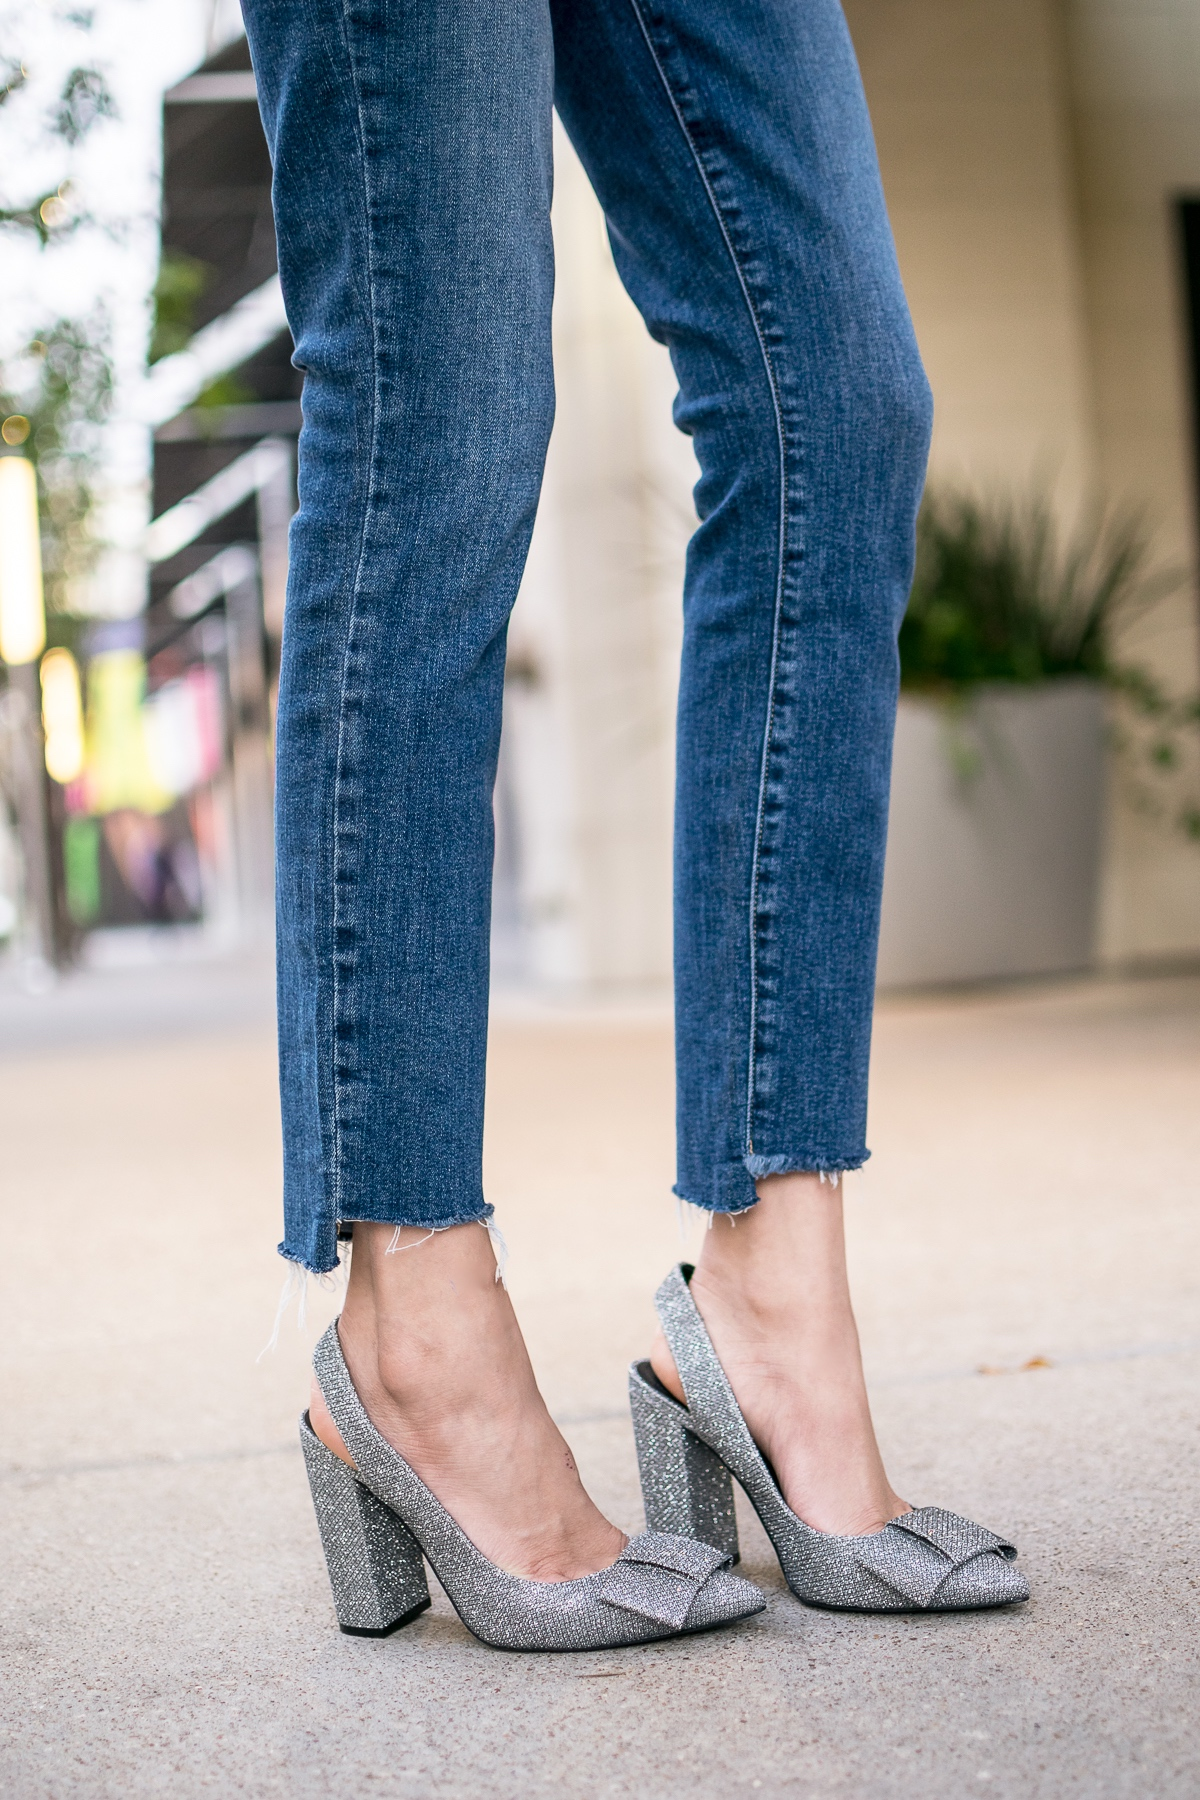 Style blogger Lilly Beltran of Daily Craving wearing silver glitter heels